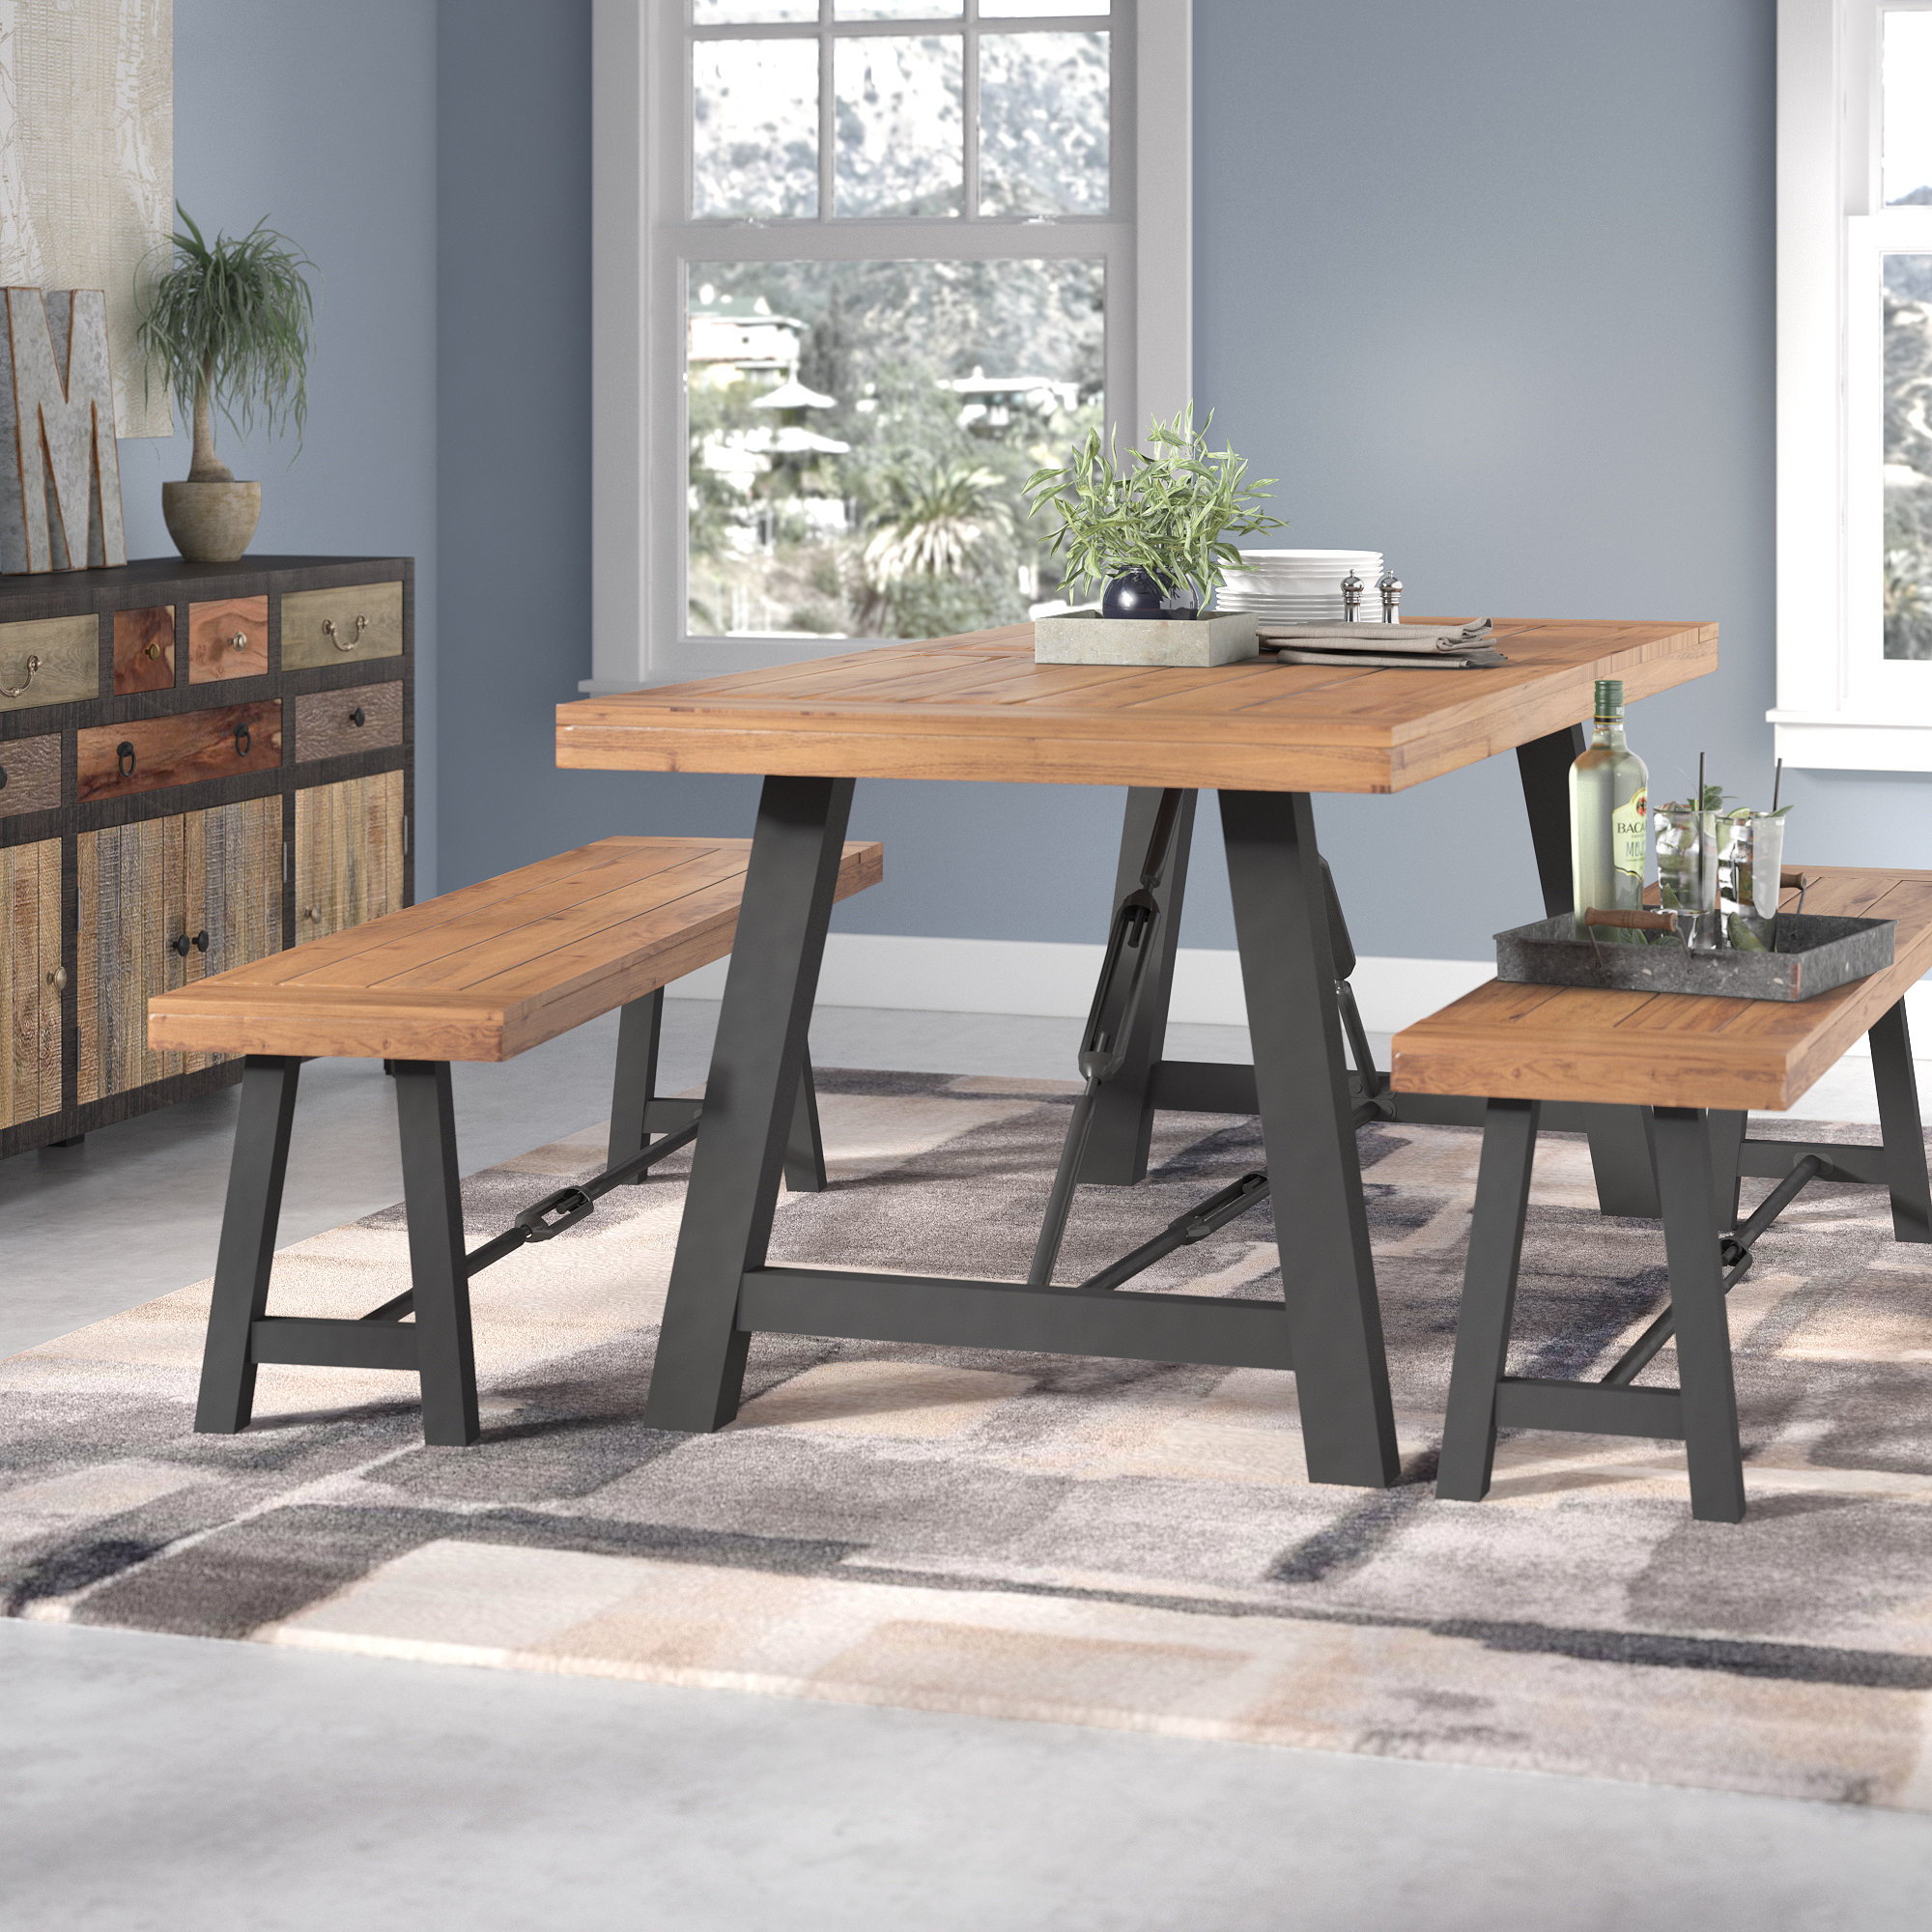 Trent Austin Design Lebanon 3 Piece Solid Wood Dining Set & Reviews |  Wayfair